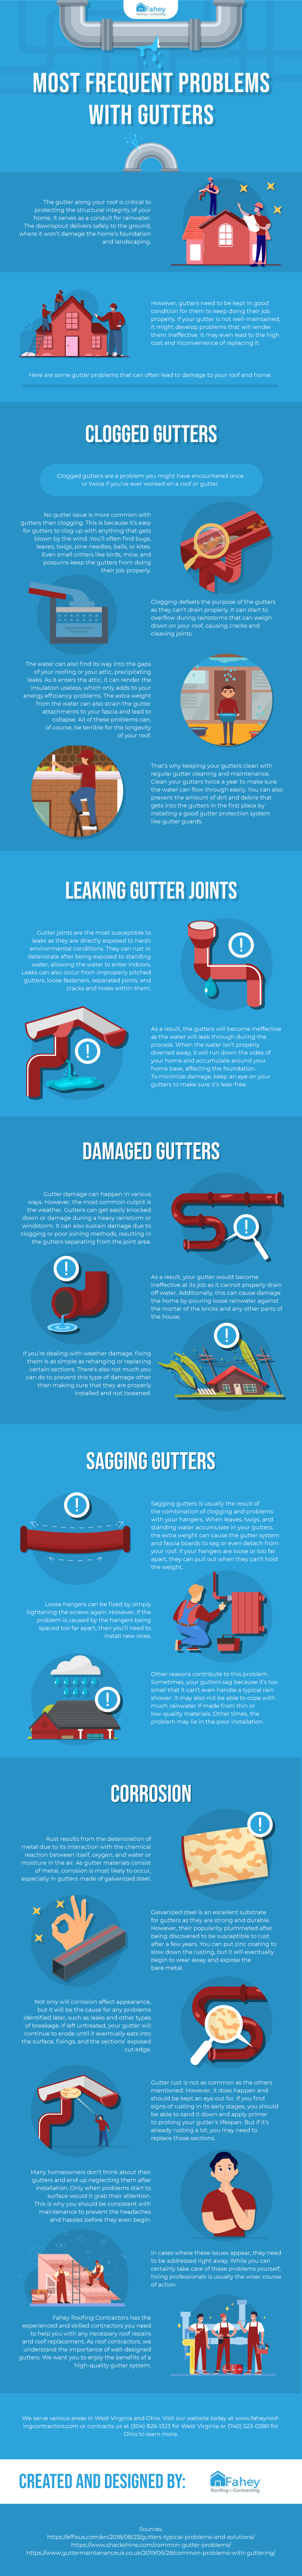 Most-Frequent-Problems-with-Gutters